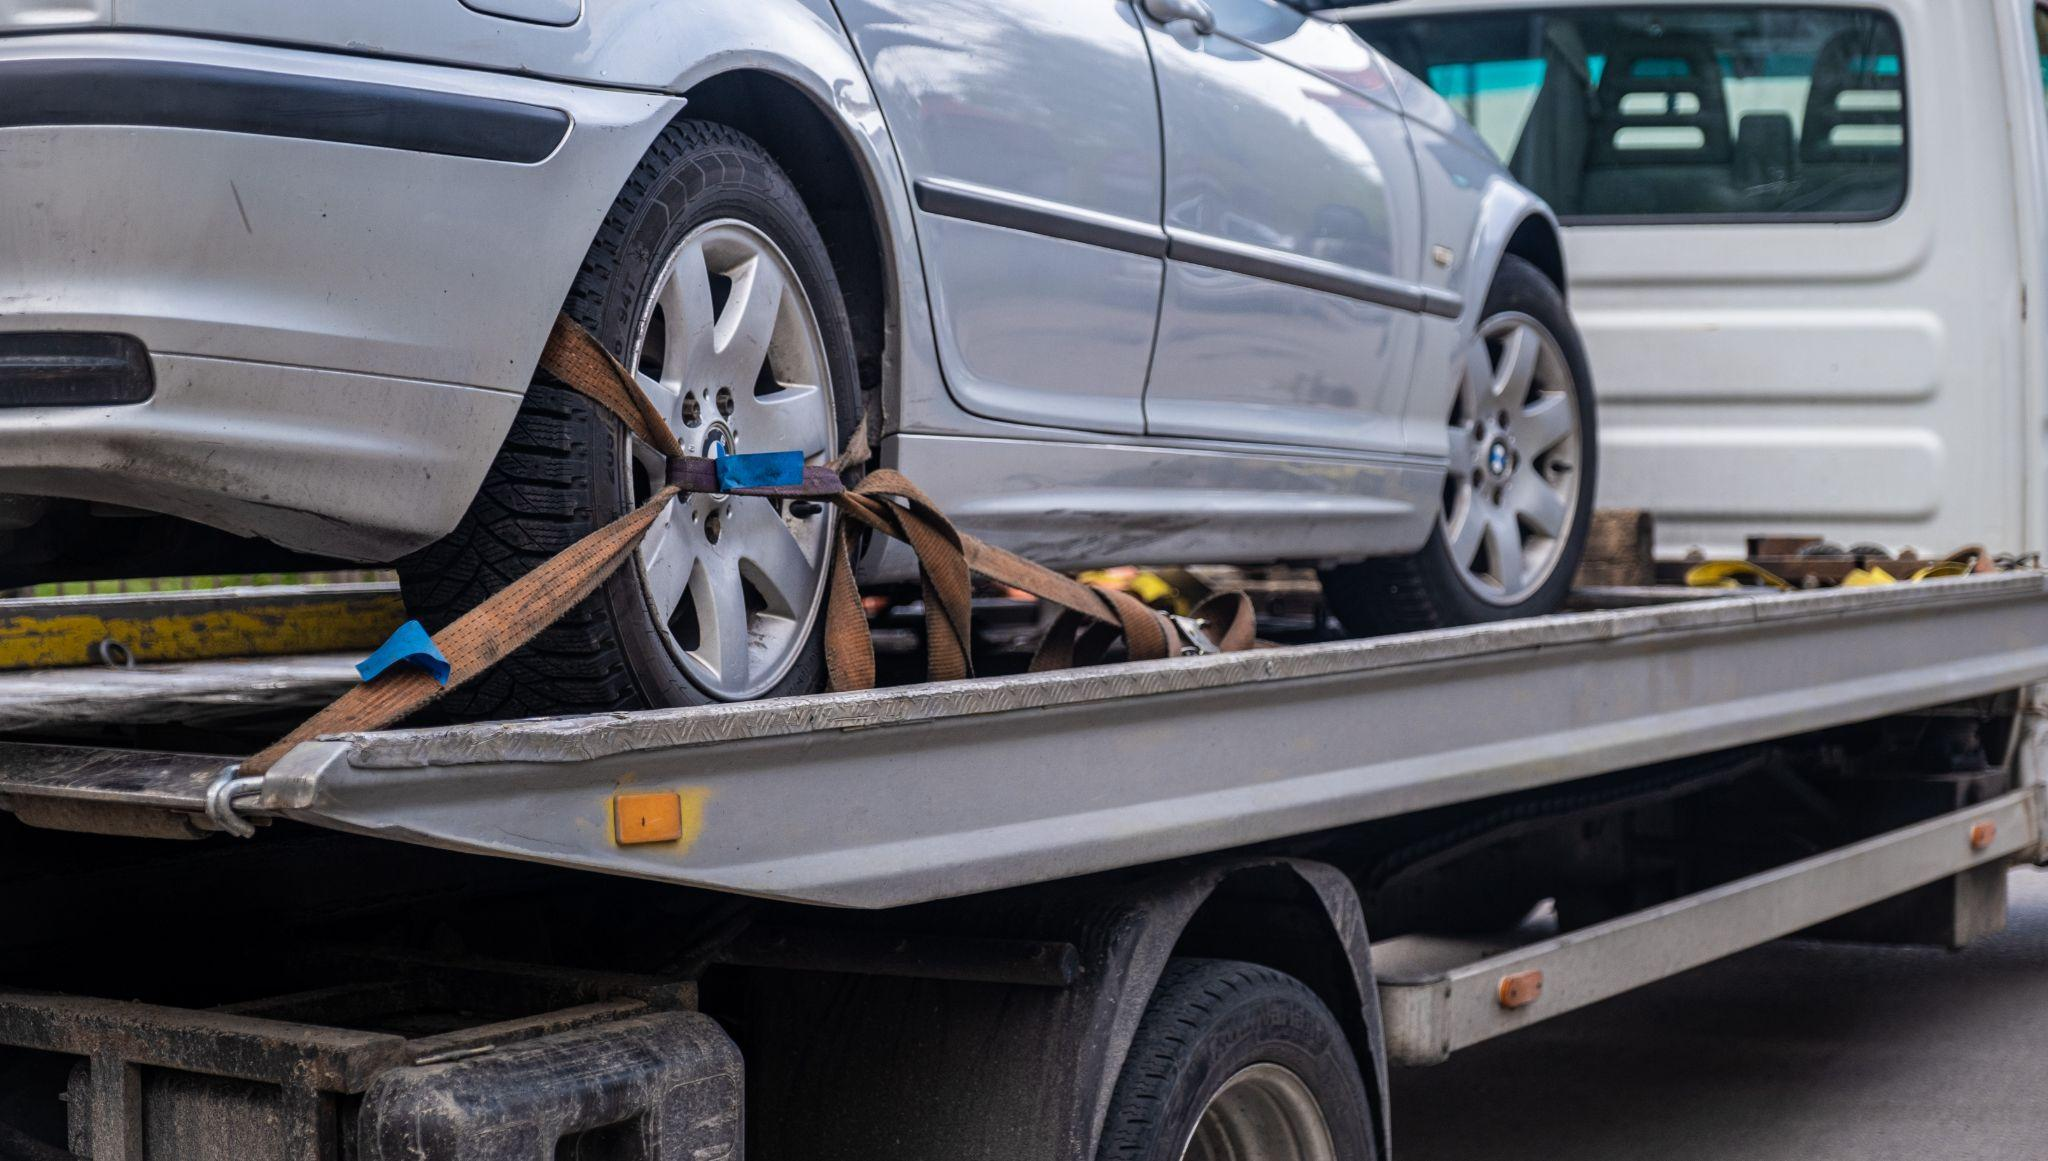 A car being repossessed by a repossession agency, something that an auto repossession attorney at The Law Offices of Kevin T. Simon, APC can help you with.